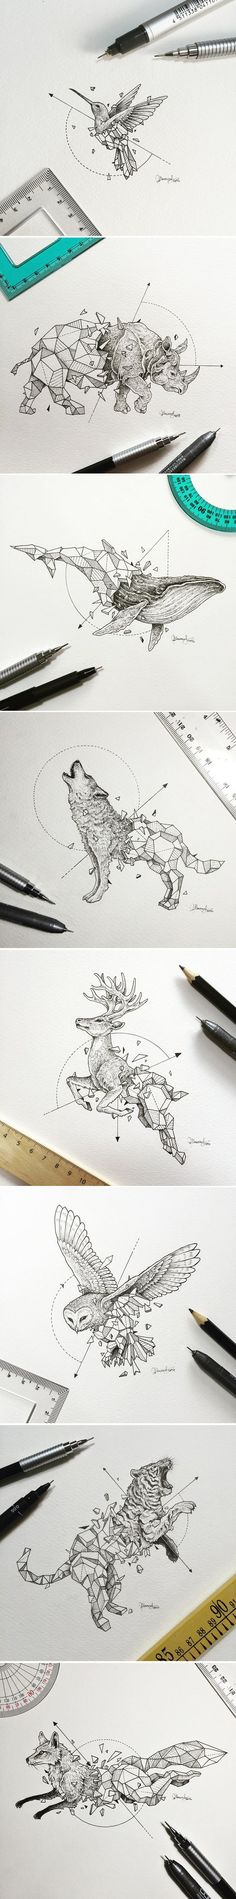 Manila-based illustrator Kerby Rosanes known as Sketchy Stories has created a new series of sketches combing animals with geometric forms. These geometric animals are amazing! Cool Drawings, Drawing Sketches, Fantasy Drawings, Drawing Ideas, Detailed Drawings, Tattoo Sketches, Drawing Tips, Sketching, Tattoo Motive